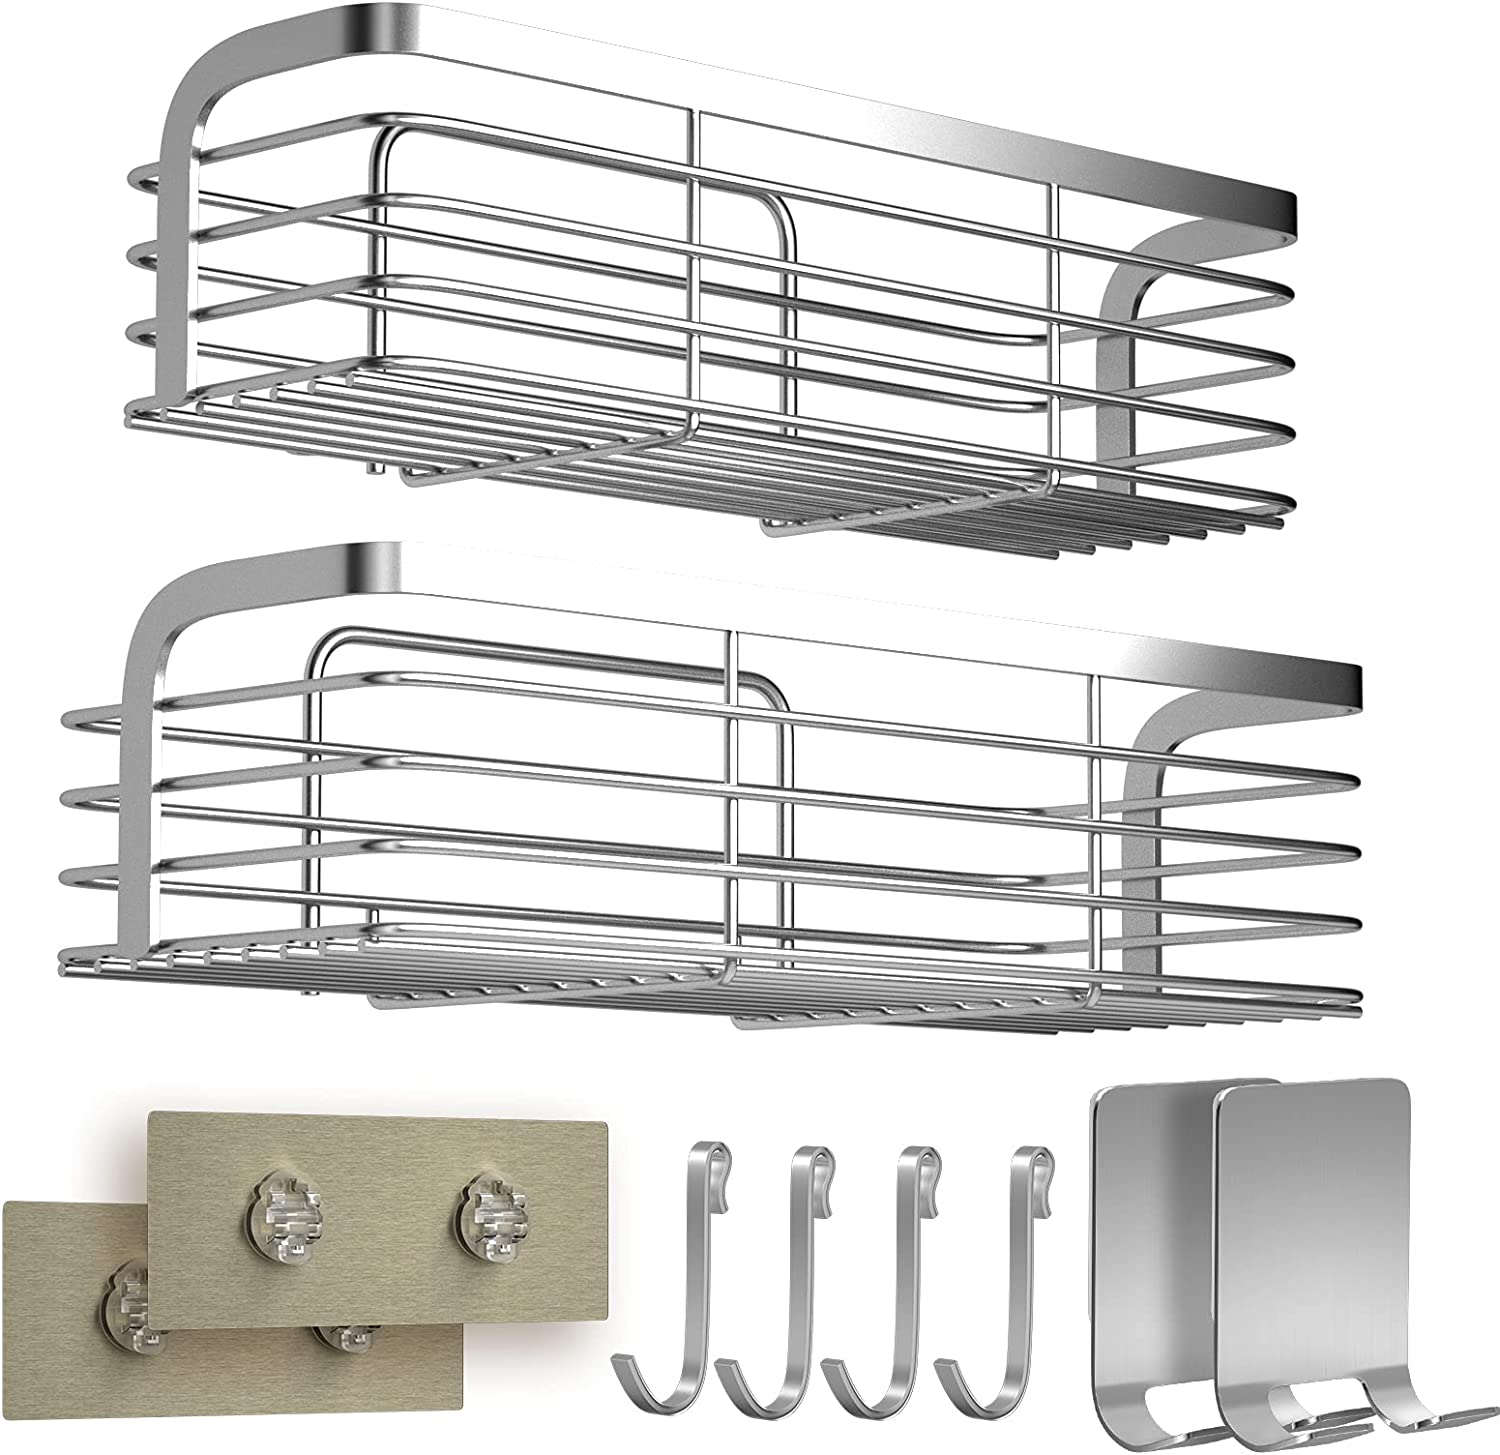 Shower Caddy With Hooks 2 No Requ In New Free Shipping a popularity Drilling Pack Organizer